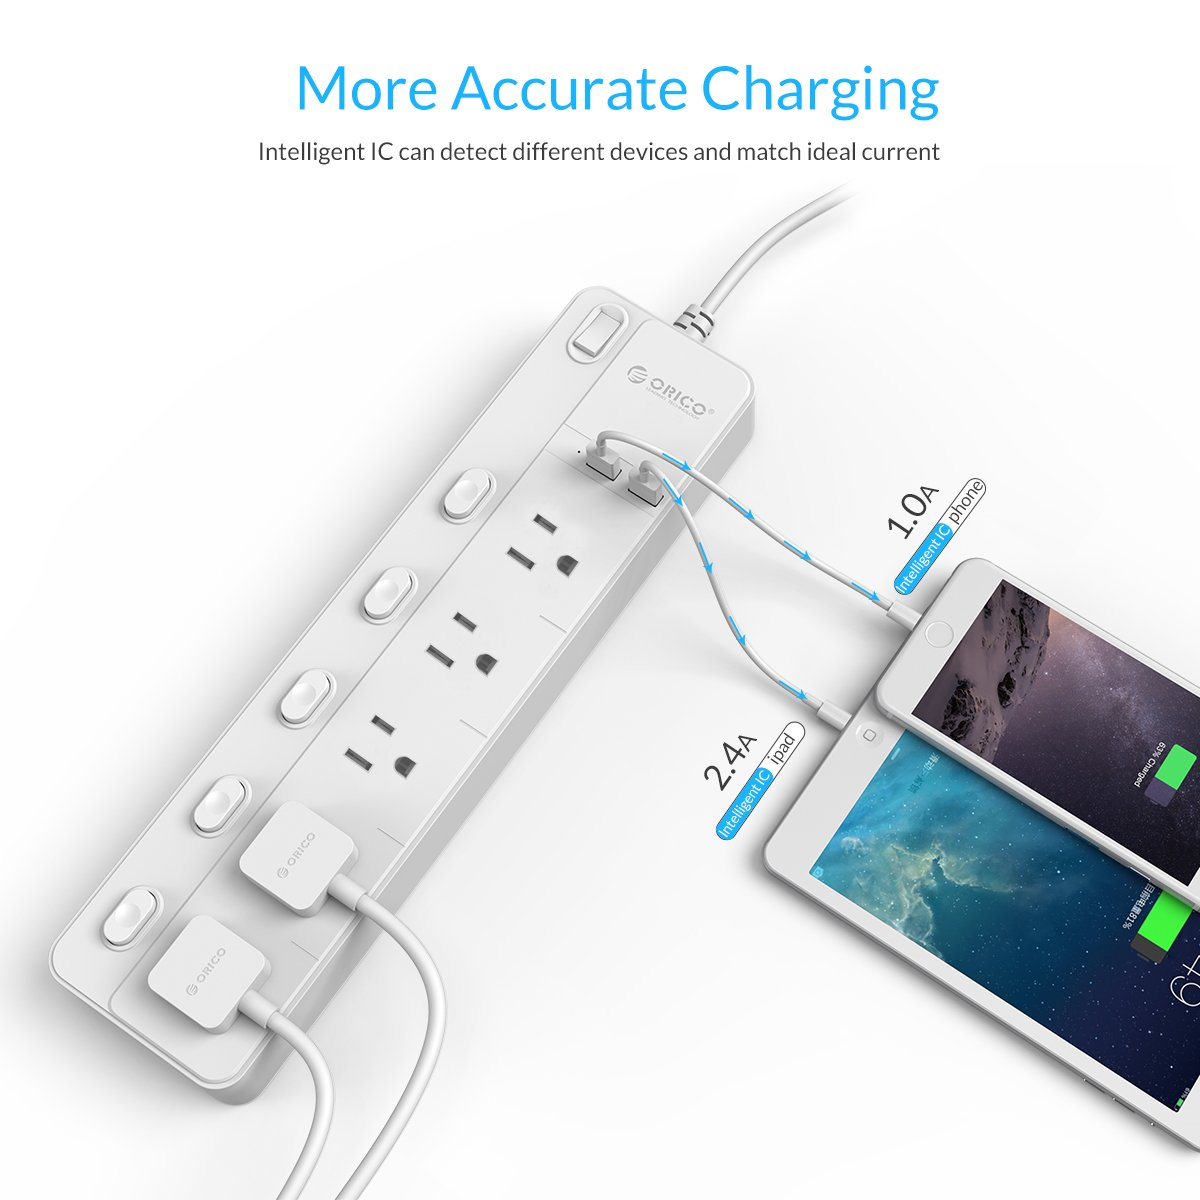 Double Lighting Protection /& Independent Switch Design Perfect for Office and Home Use. 5 AC Outlet Surge Protector with 2 USB Charging Port ORICO Power Strip